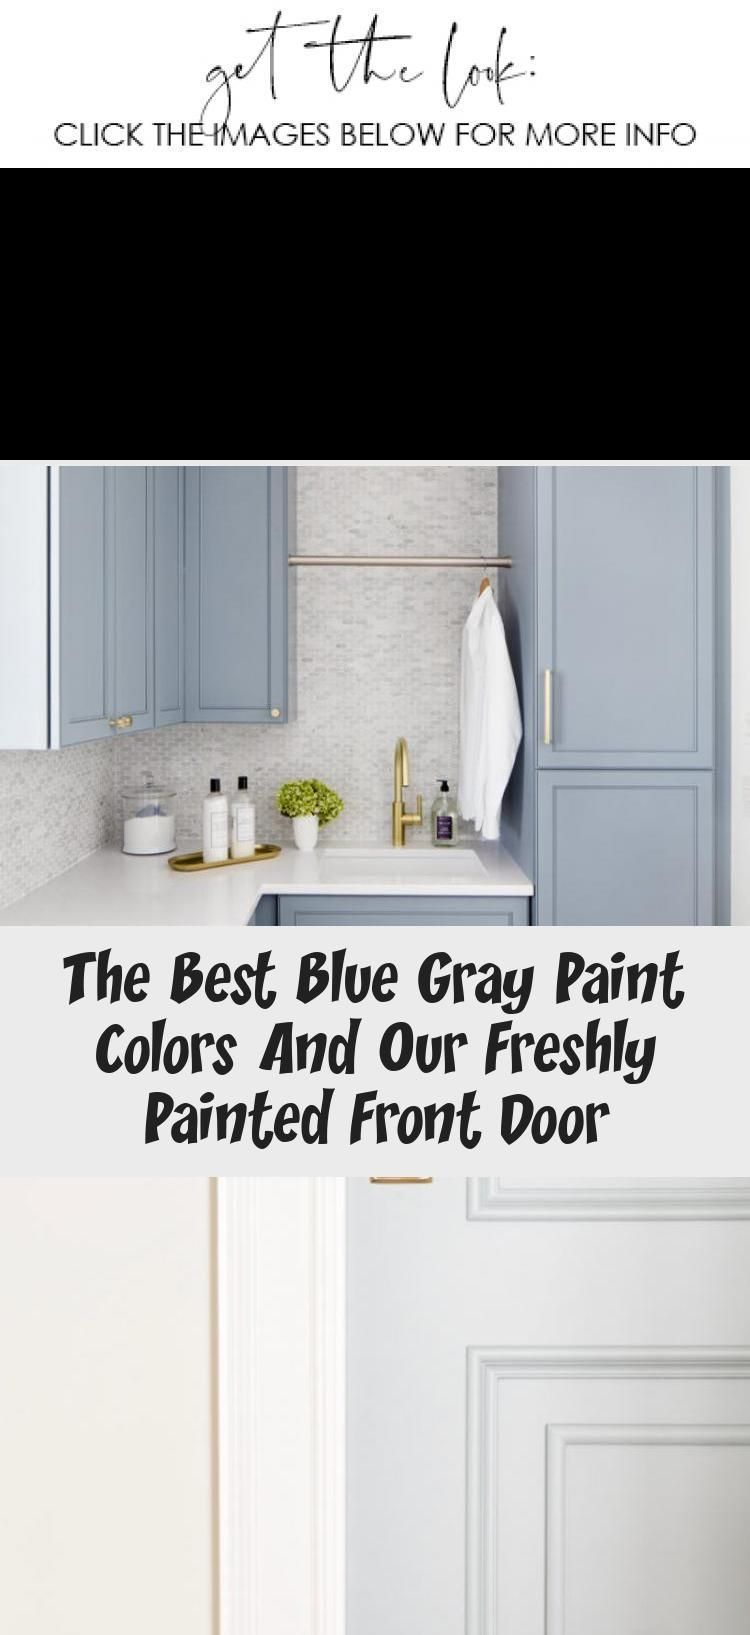 These Benjamin Moore Cloudy Sky laundry room cabinets are the perfect example of a blue gray paint colors! #laundryroom #laundryroomLayout #Bluelaundryroom #Modernlaundryroom #laundryroomEntryWay #laundryroomDoor #graylaundryrooms These Benjamin Moore Cloudy Sky laundry room cabinets are the perfect example of a blue gray paint colors! #laundryroom #laundryroomLayout #Bluelaundryroom #Modernlaundryroom #laundryroomEntryWay #laundryroomDoor #graylaundryrooms